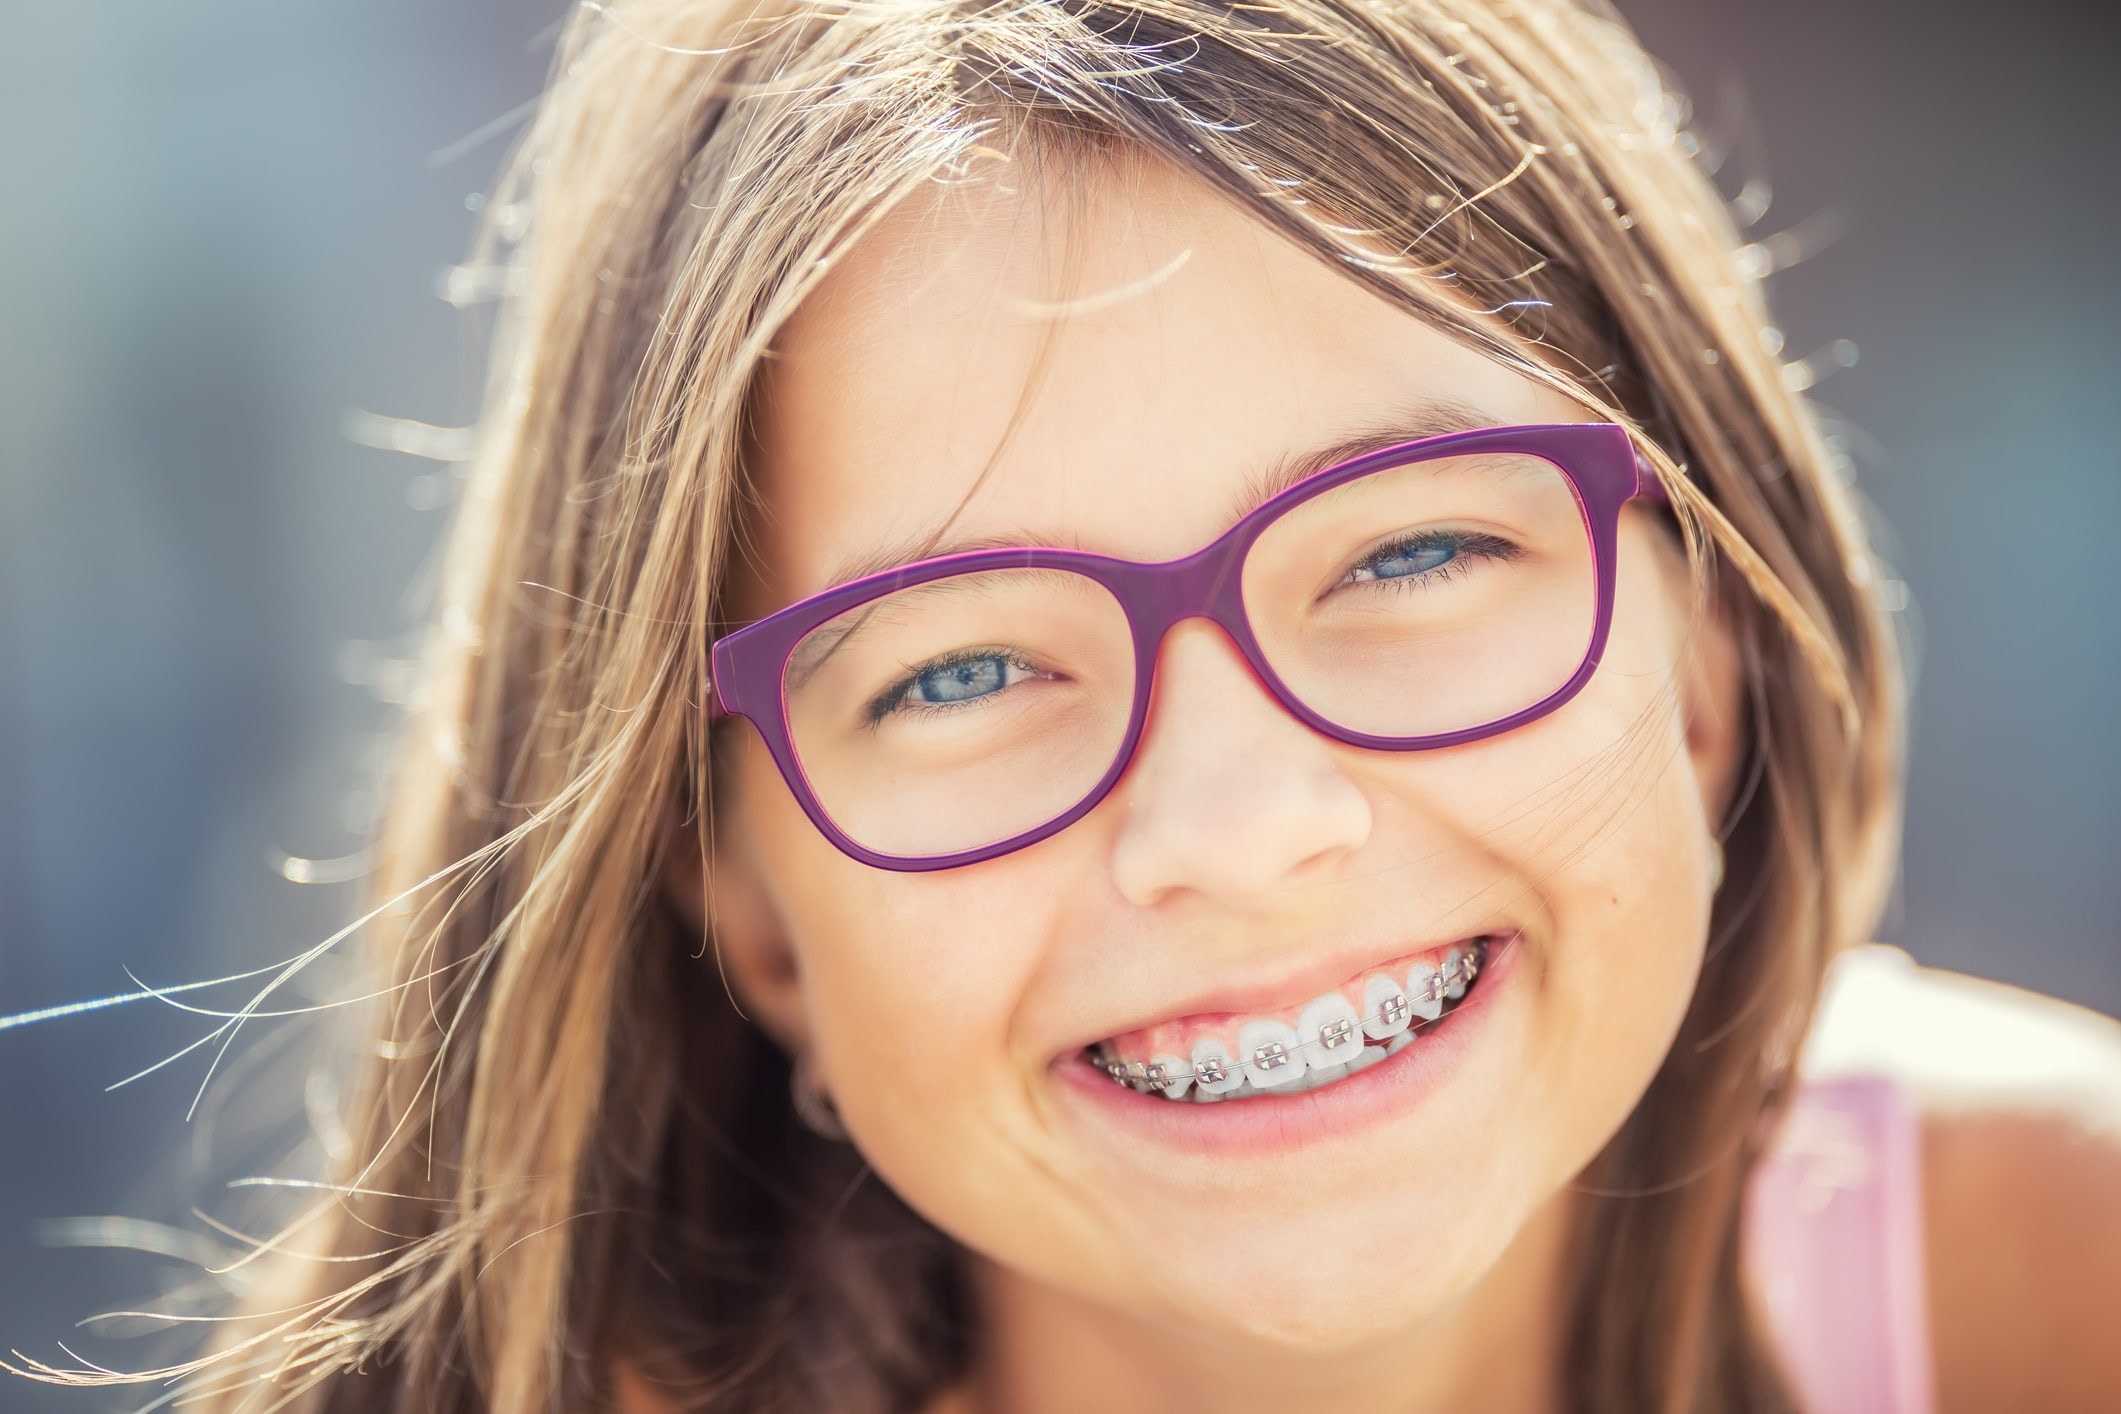 Does Your Child Really Need Braces